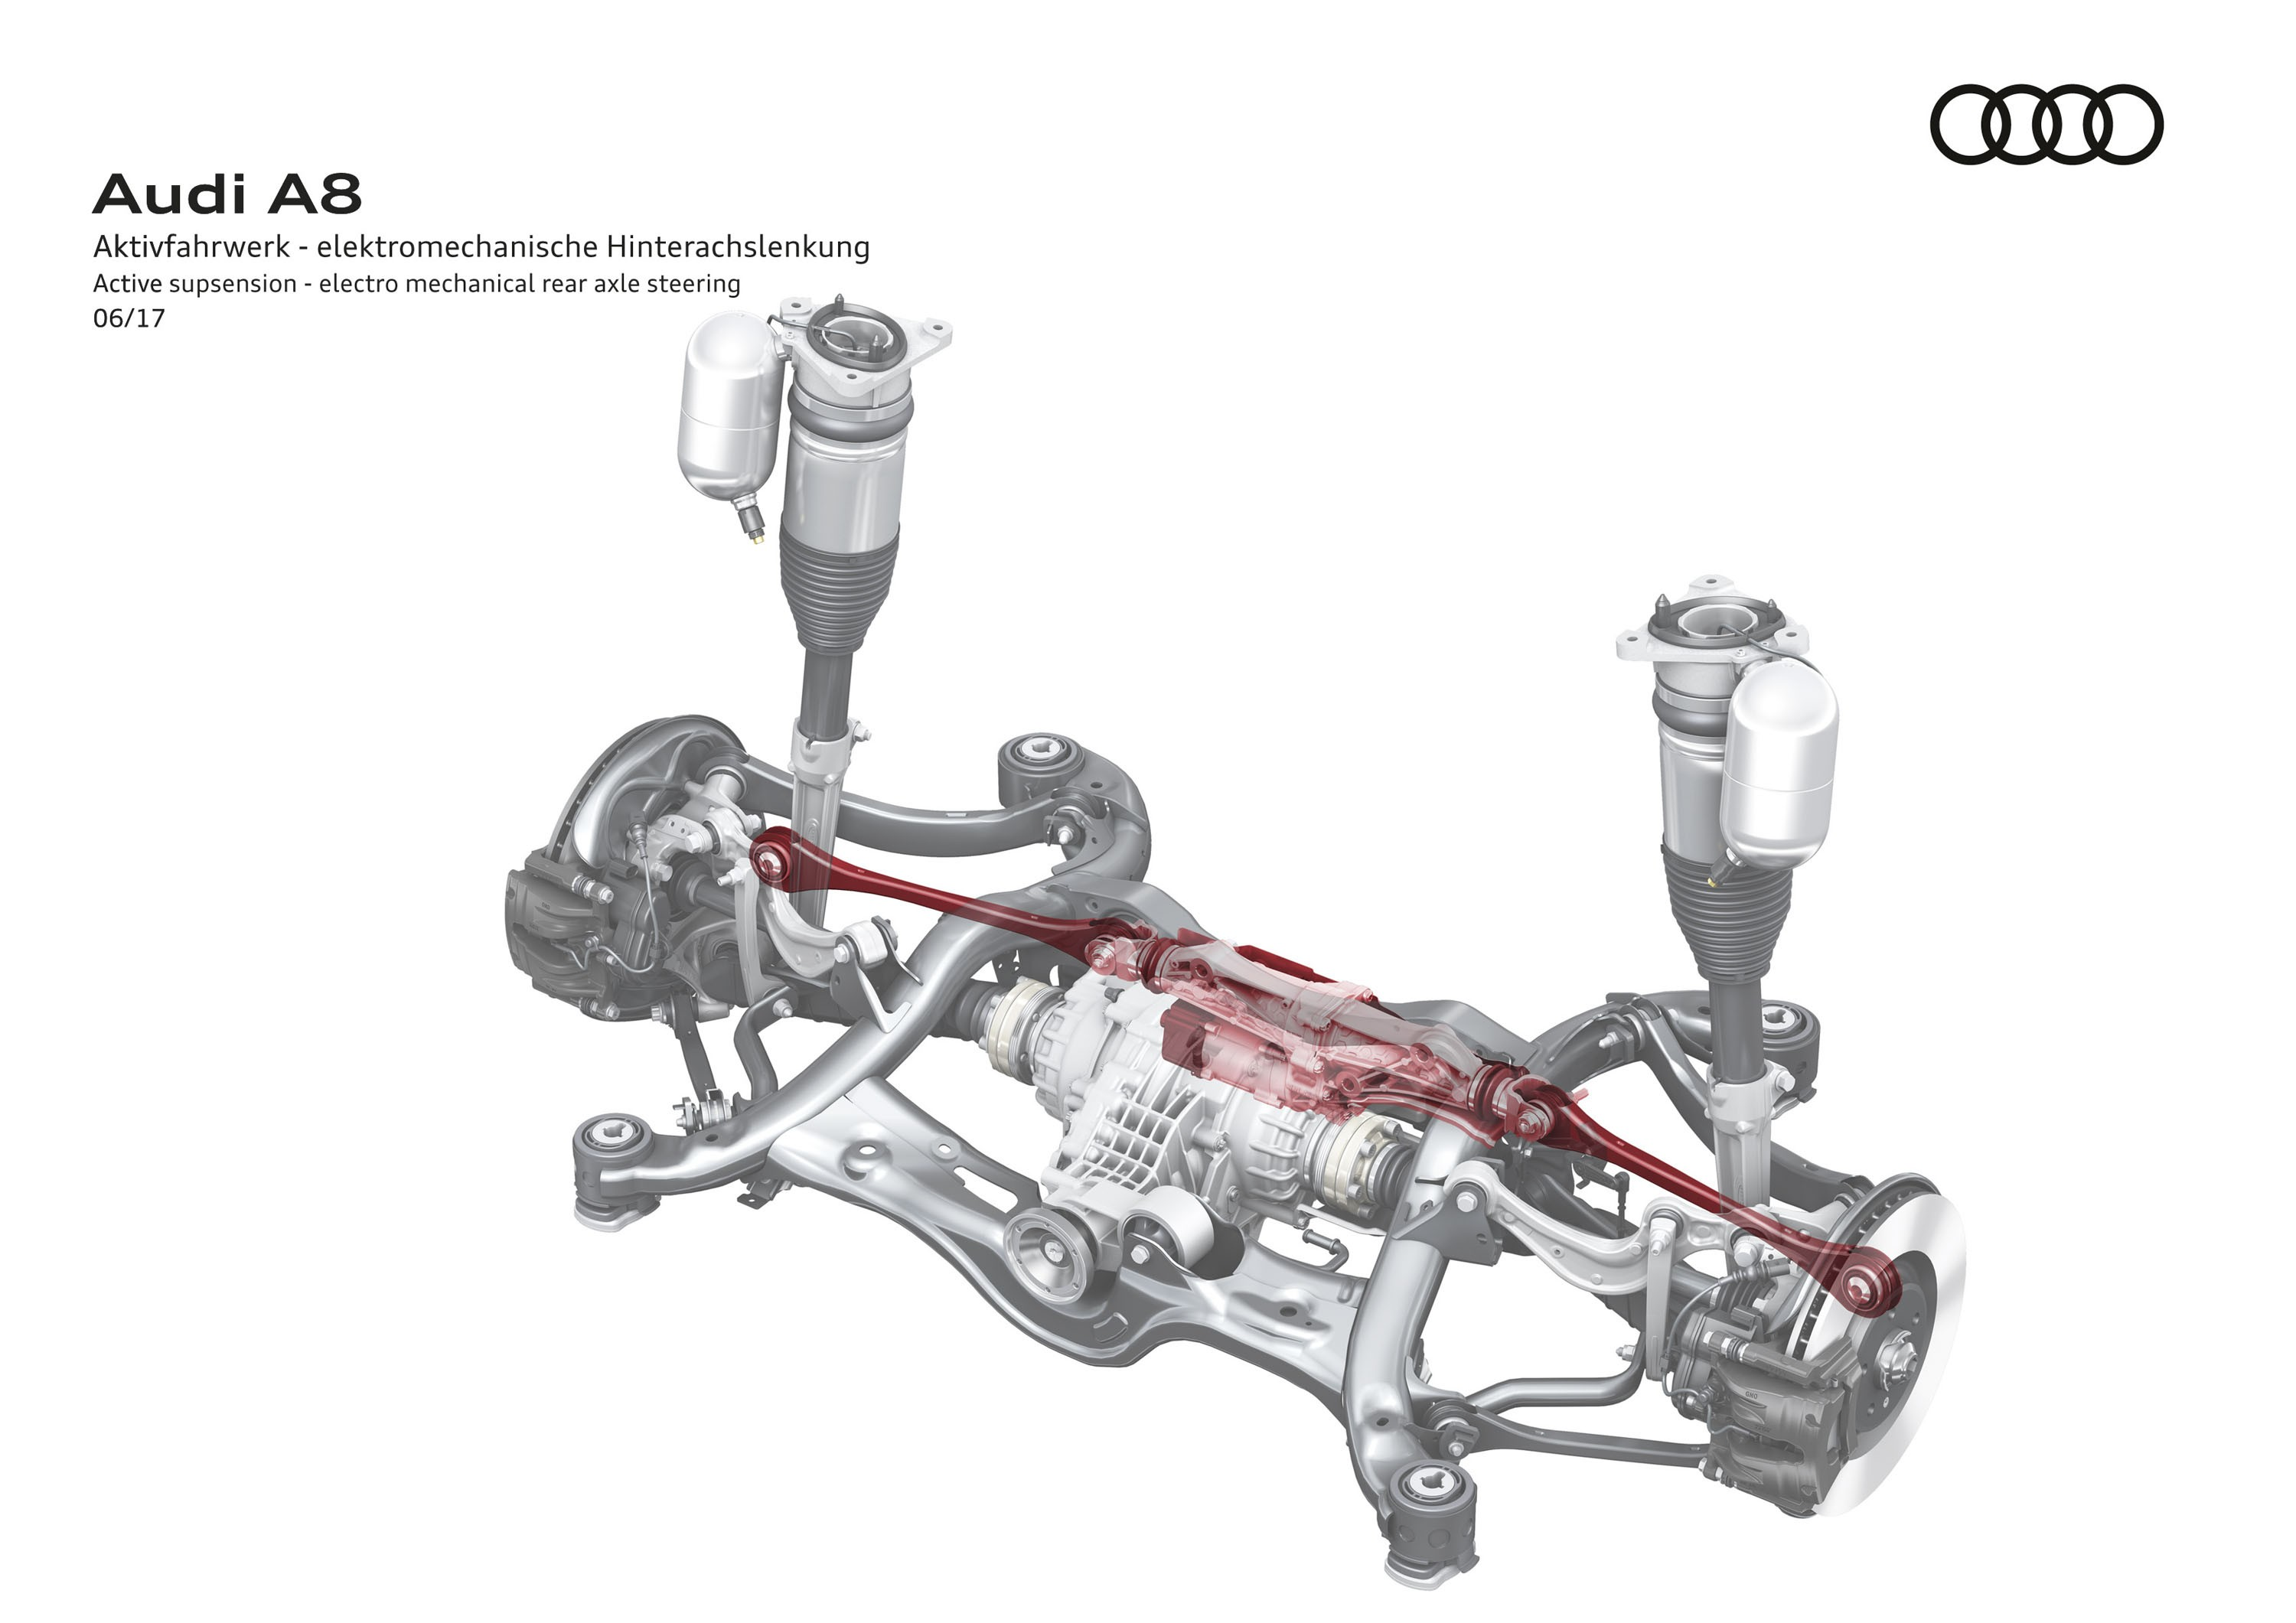 Bentley W12 Engine Diagram: Audi A8 Fuse Diagram At Galaxydownloads.co